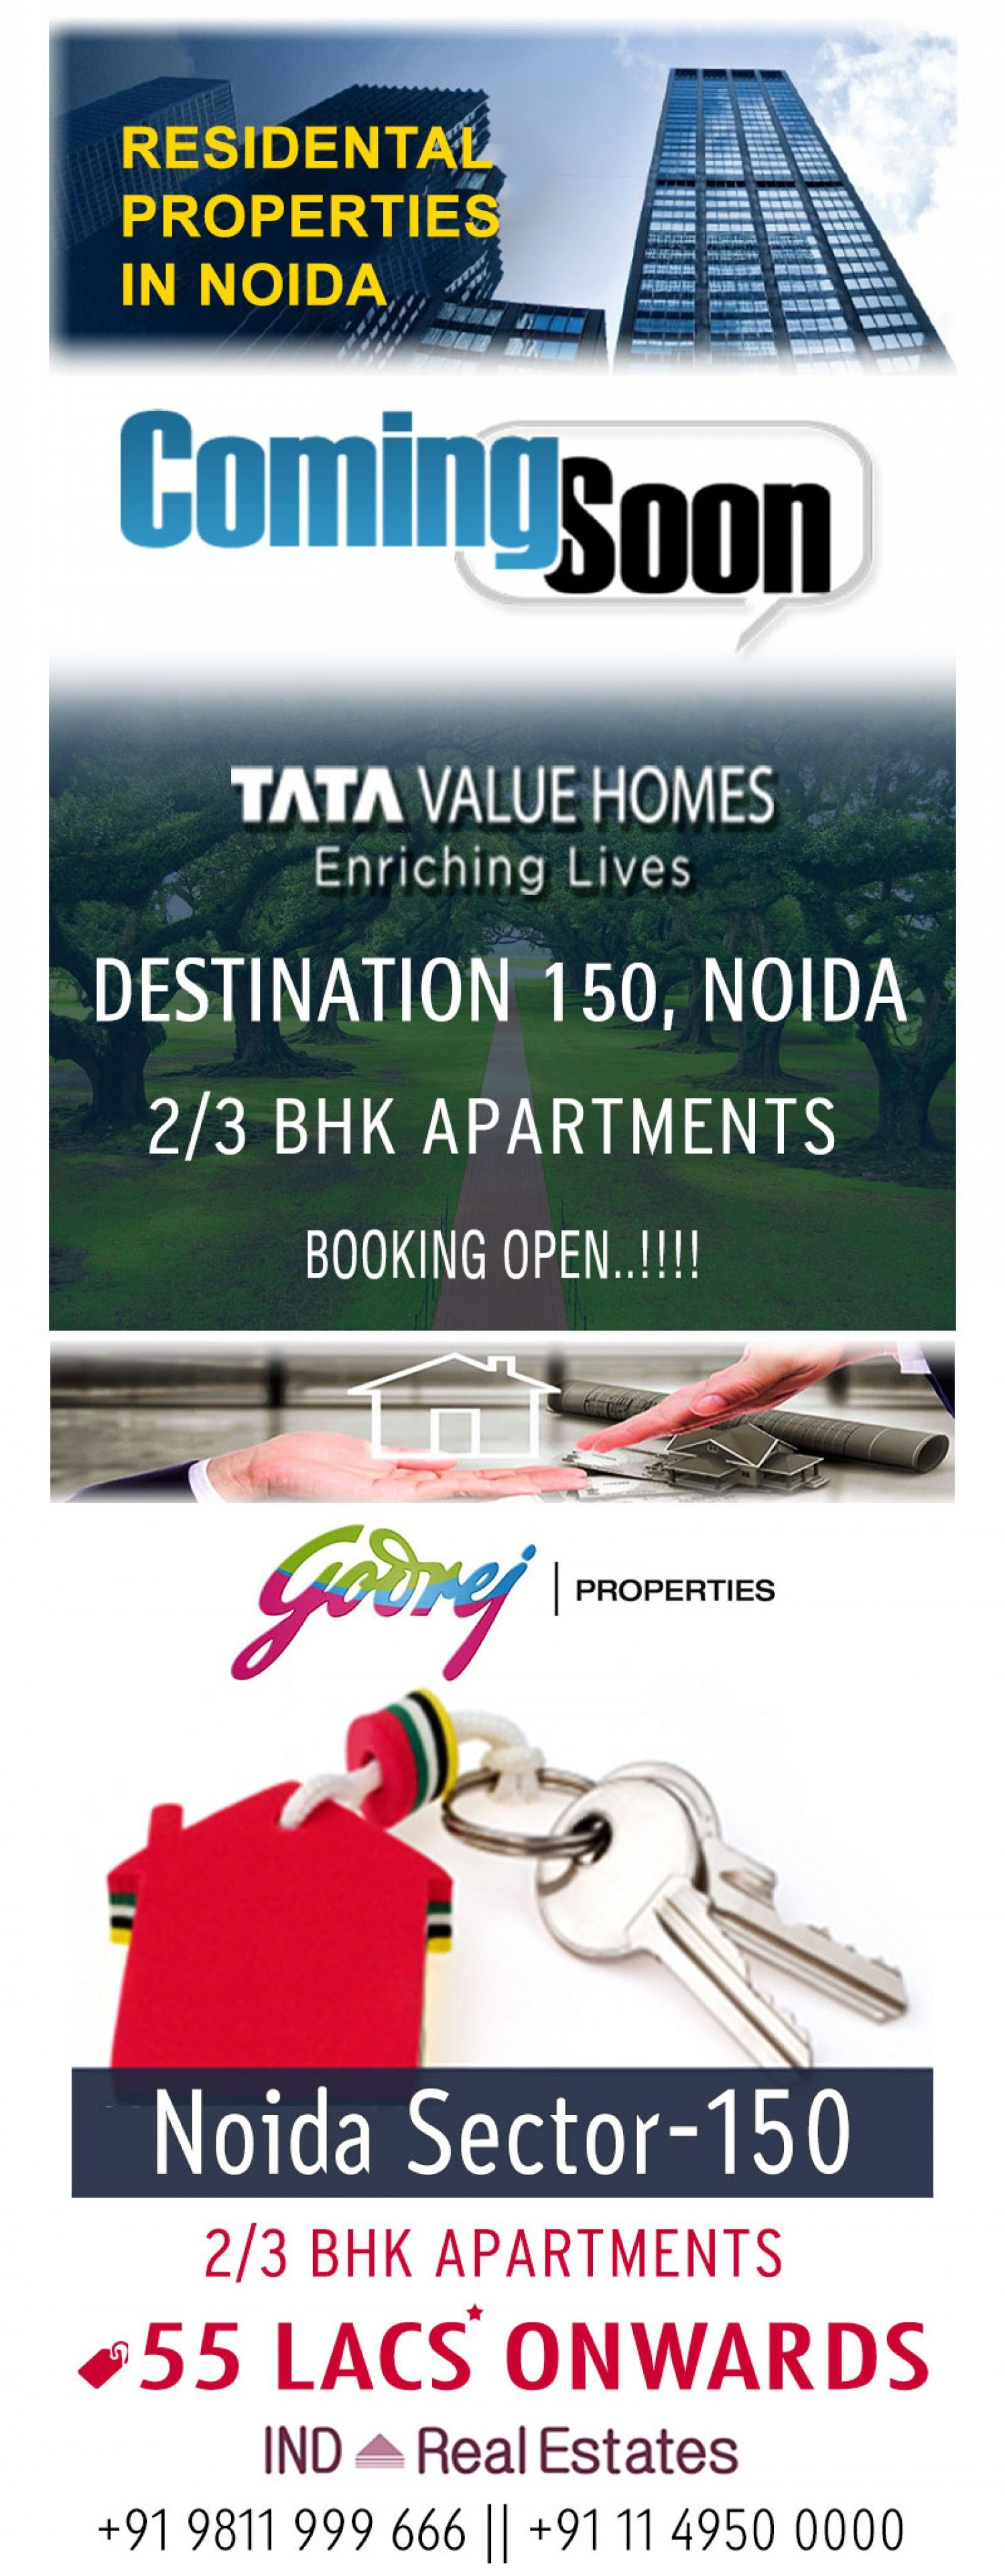 Projects in Noida Sector 150 Infographic